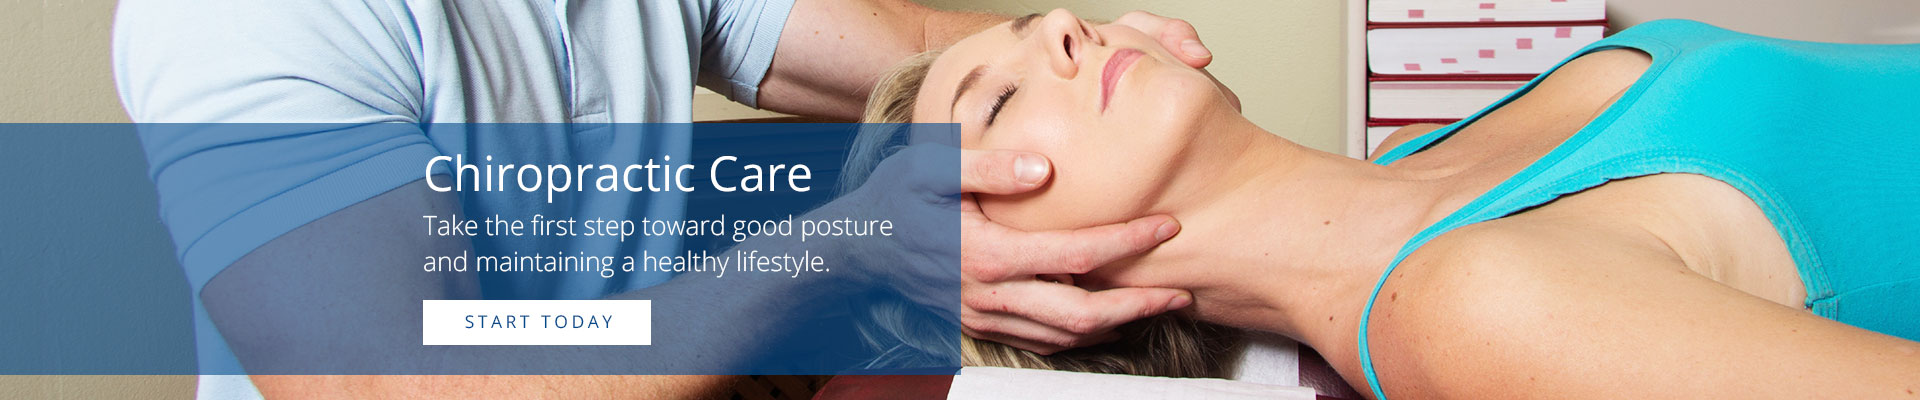 Headon Chiropractic Care